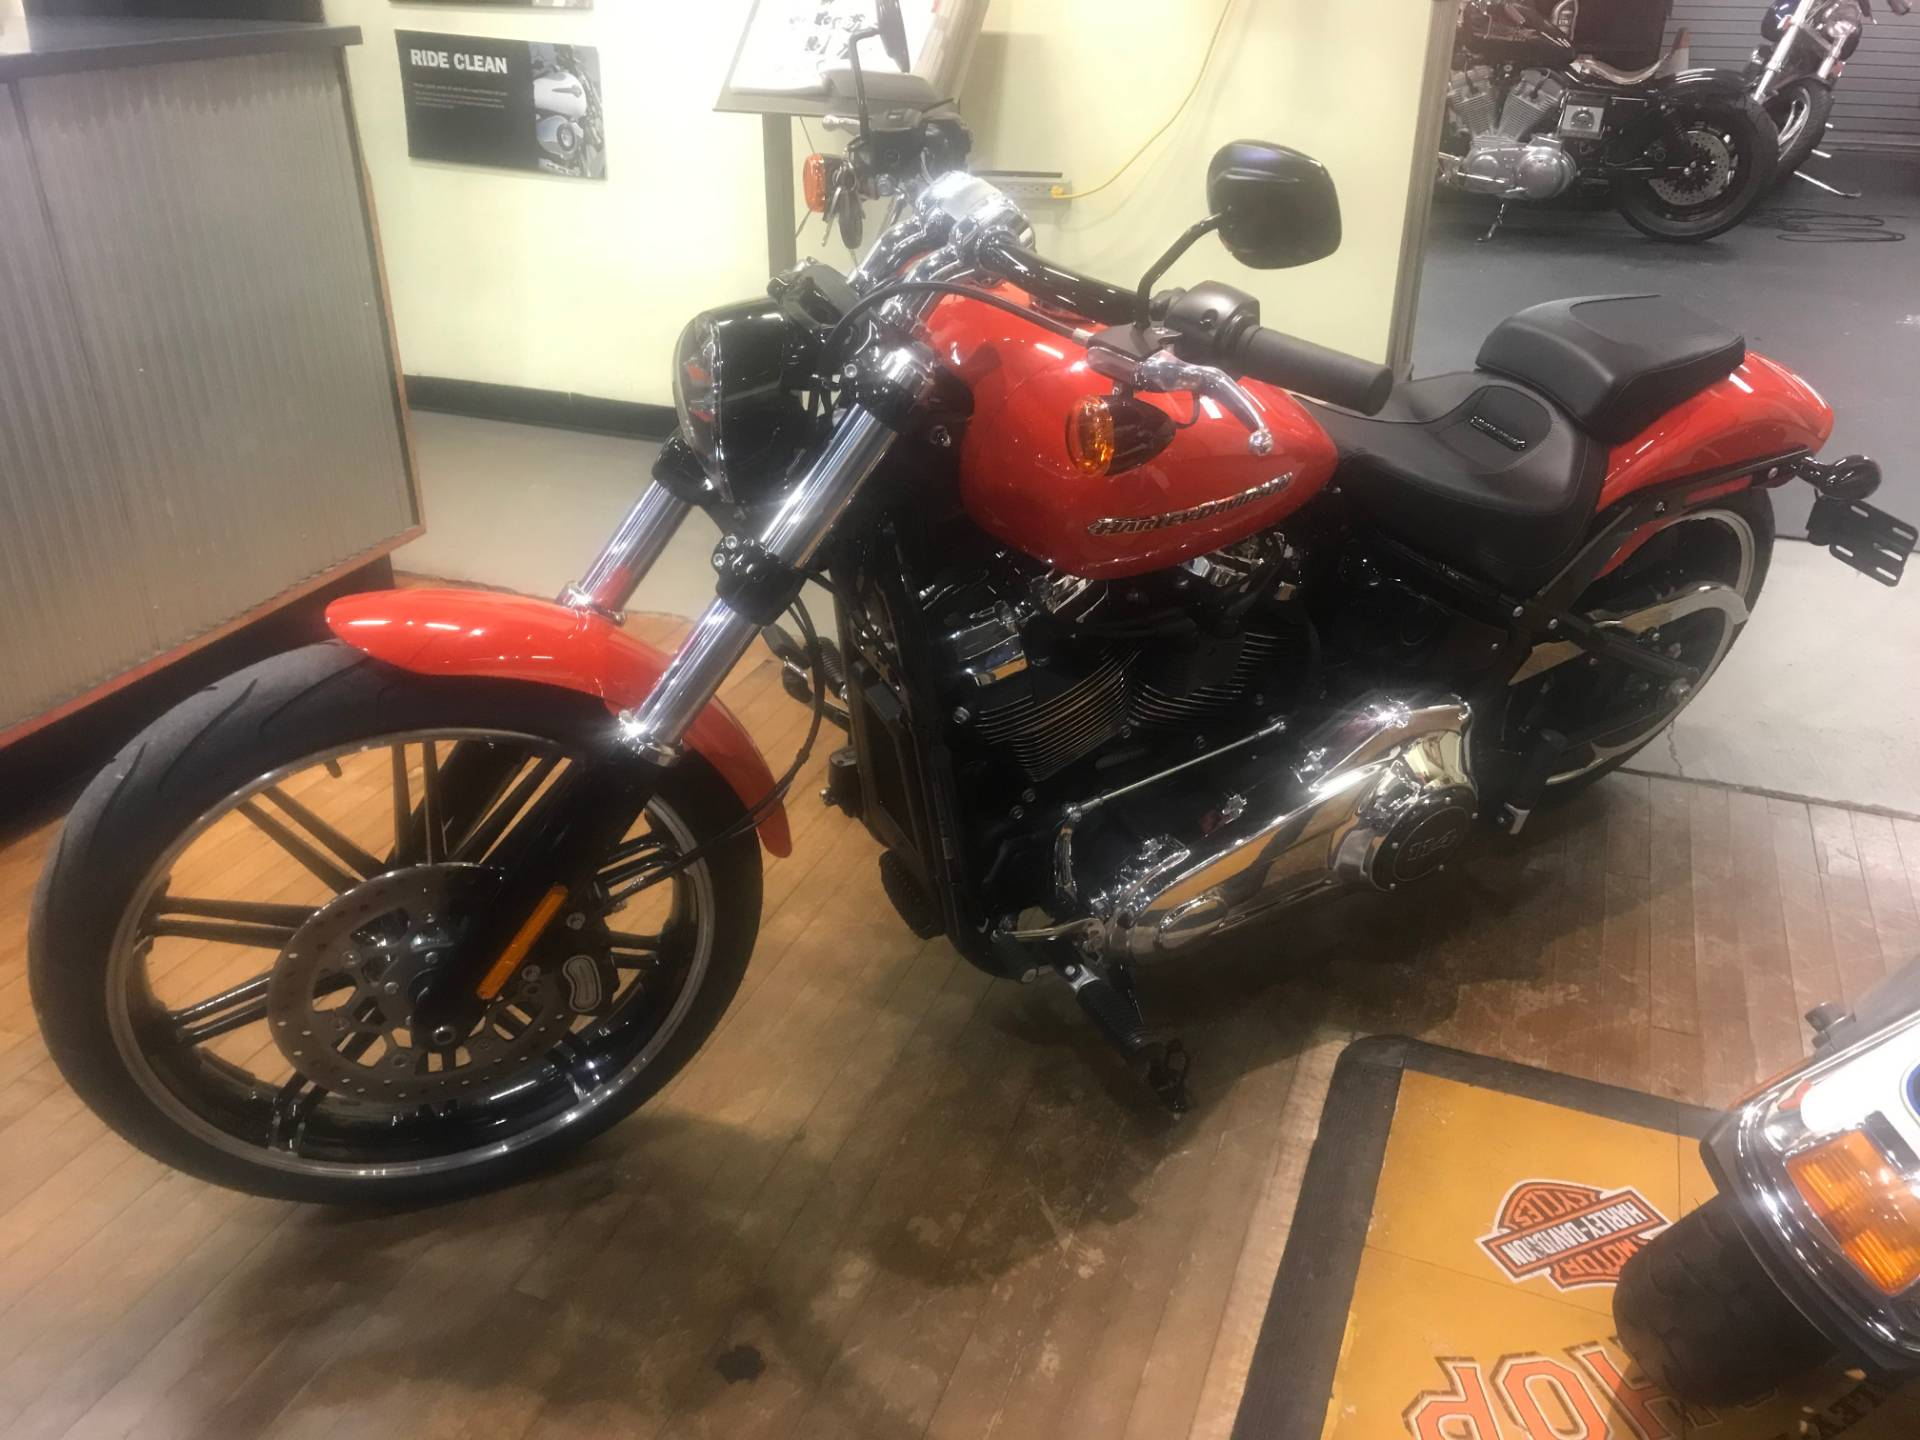 2020 Harley-Davidson BREAKOUT in Lakewood, New Jersey - Photo 2